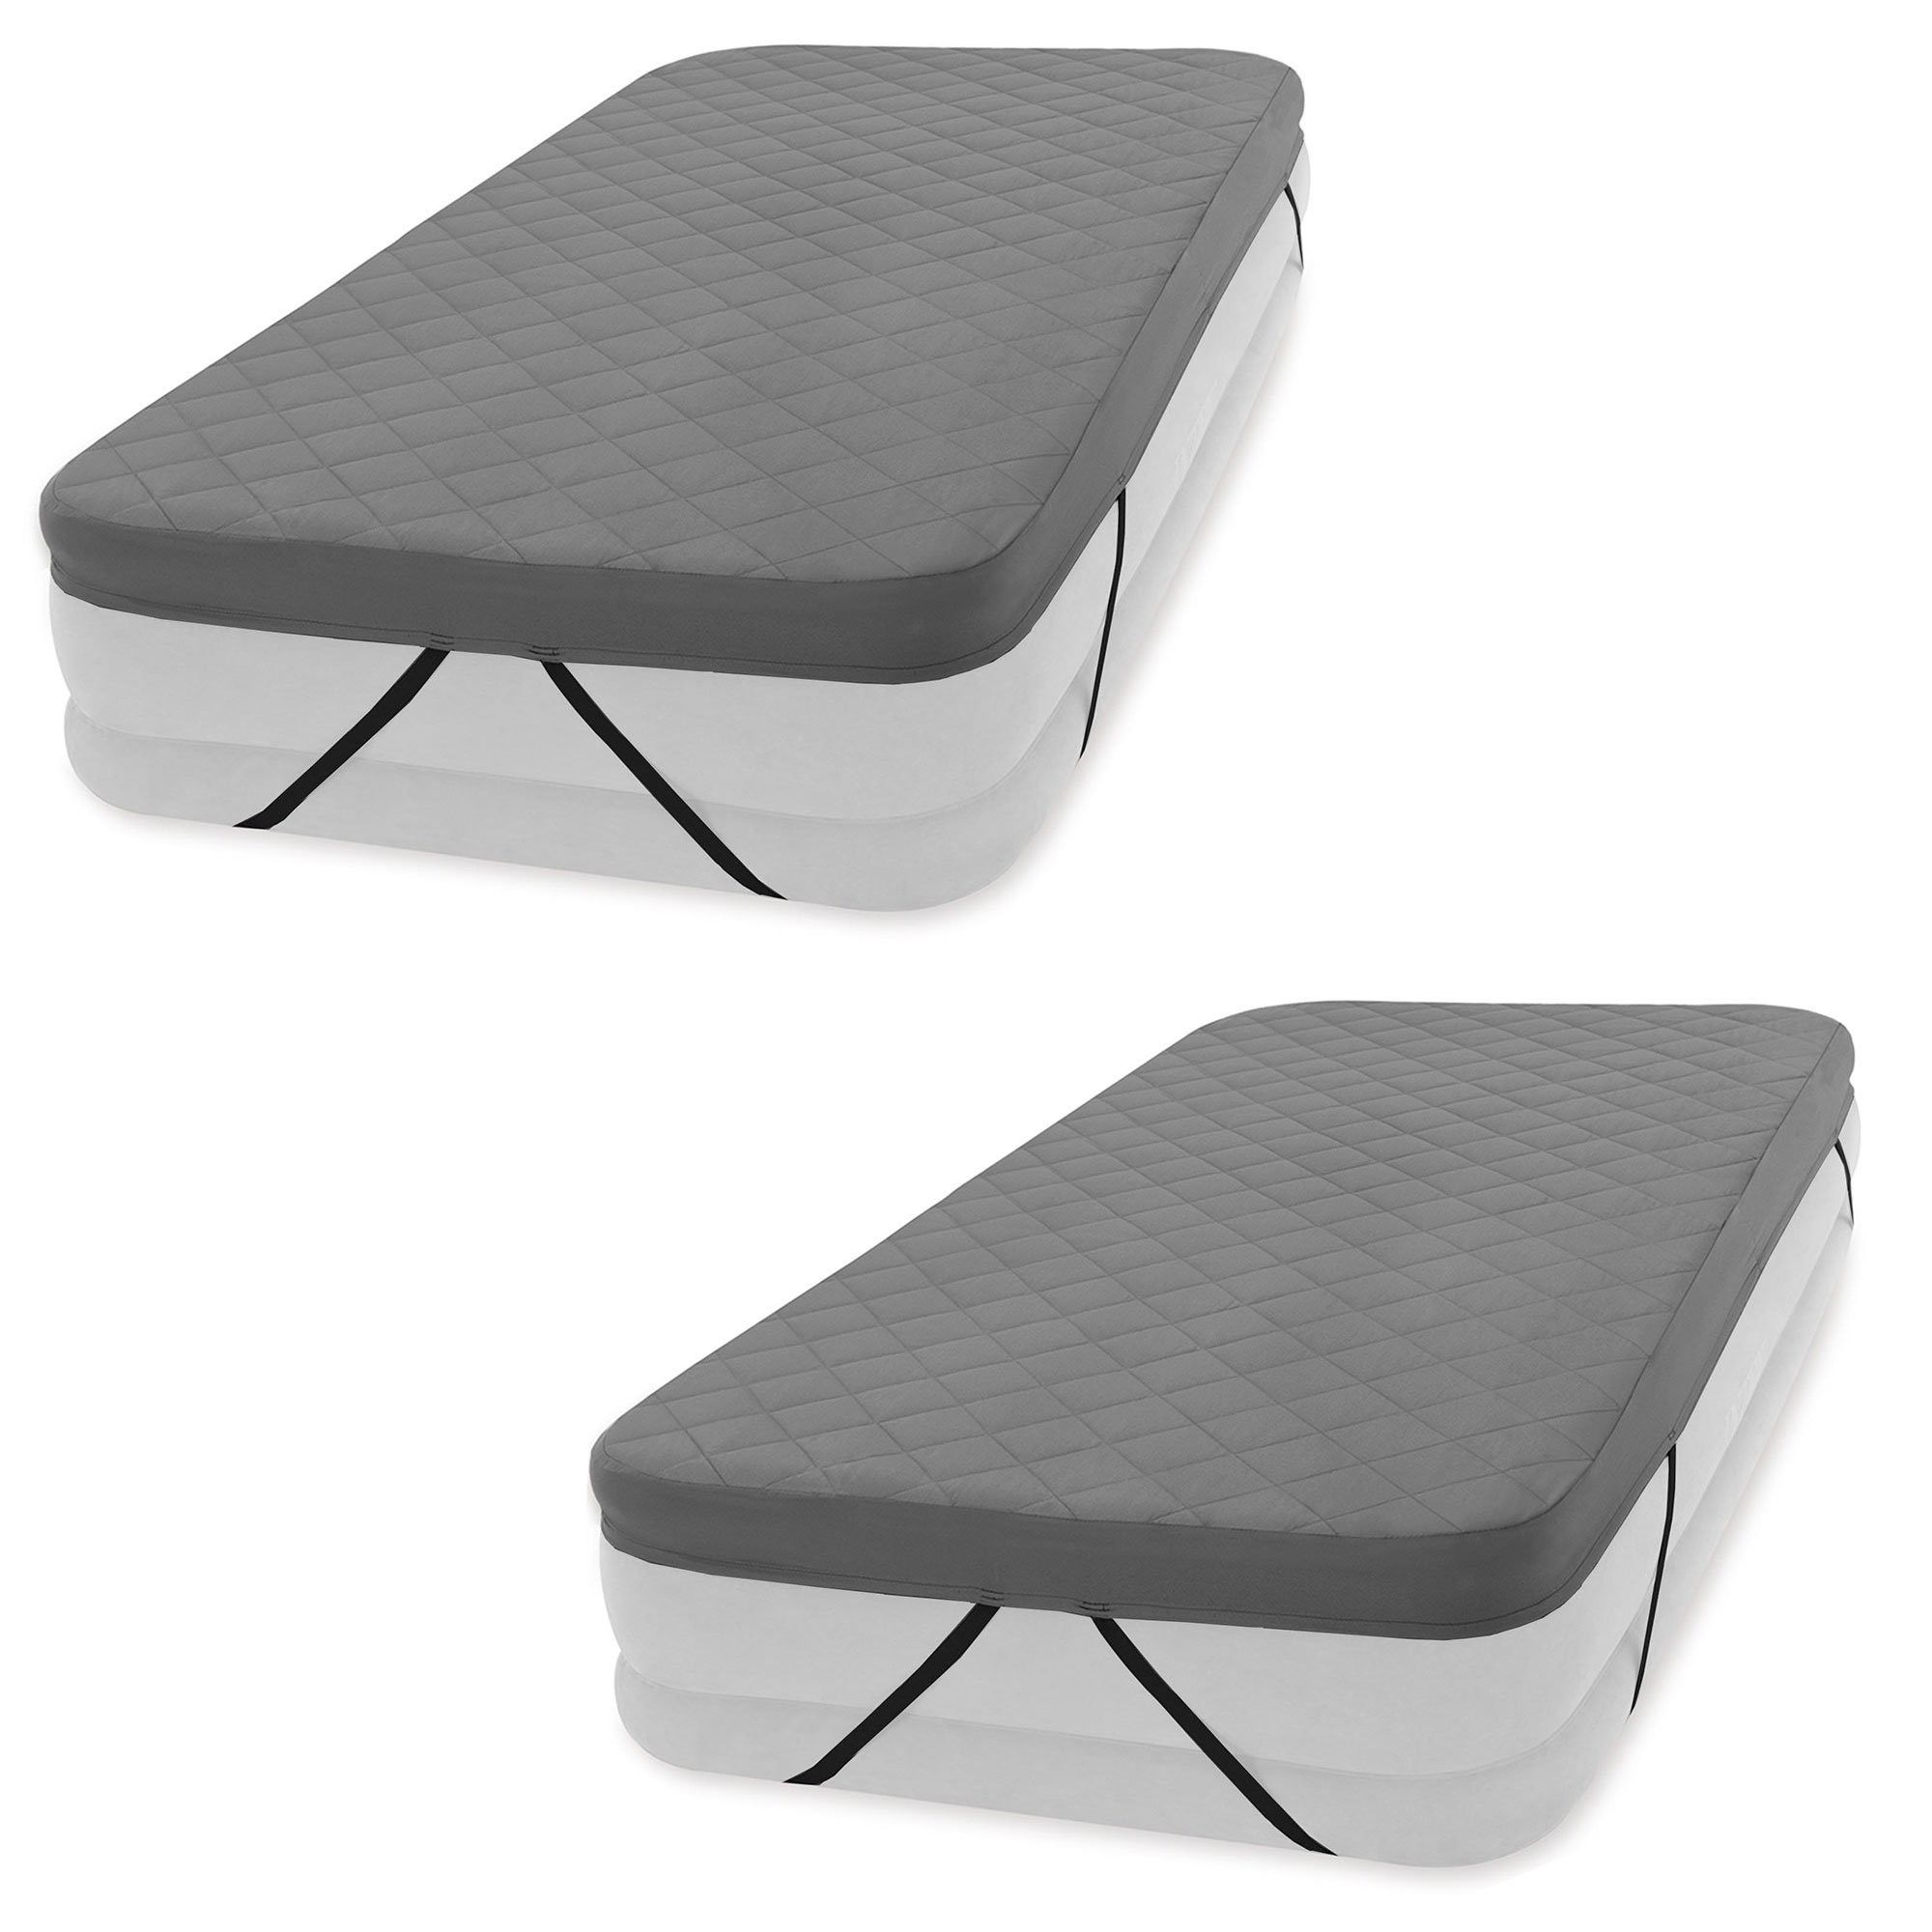 2 Pack Intex Inflatable Prime Comfort Elevated Queen Airbed with Built-In Pump